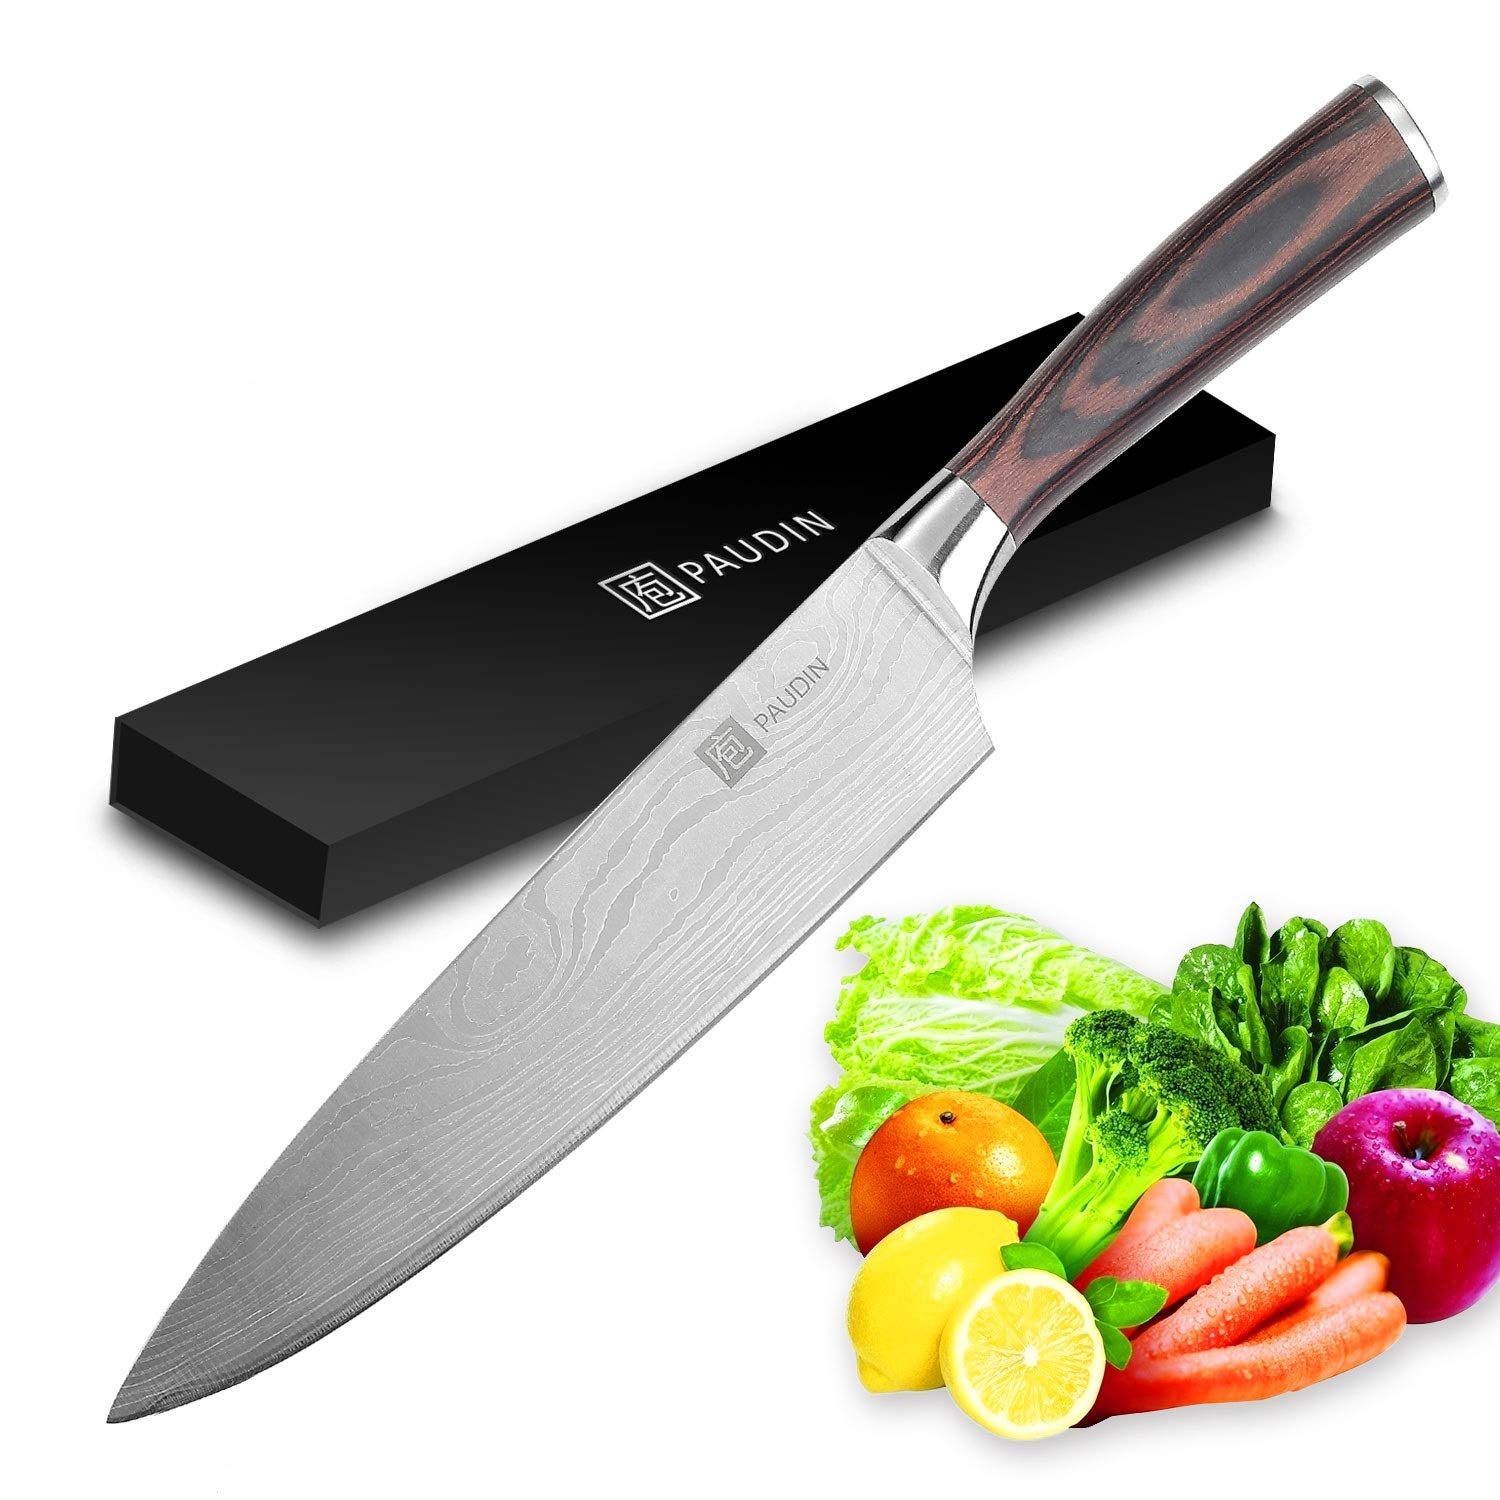 Chef Knife - PAUDIN Pro Kitchen Knife 8 Inch Chef's Knife N1 German High Carbon Stainless Steel Knife with Ergonomic Handle, Ultra Sharp, Best Choice for Home Kitchen & Restaurant by PAUDIN